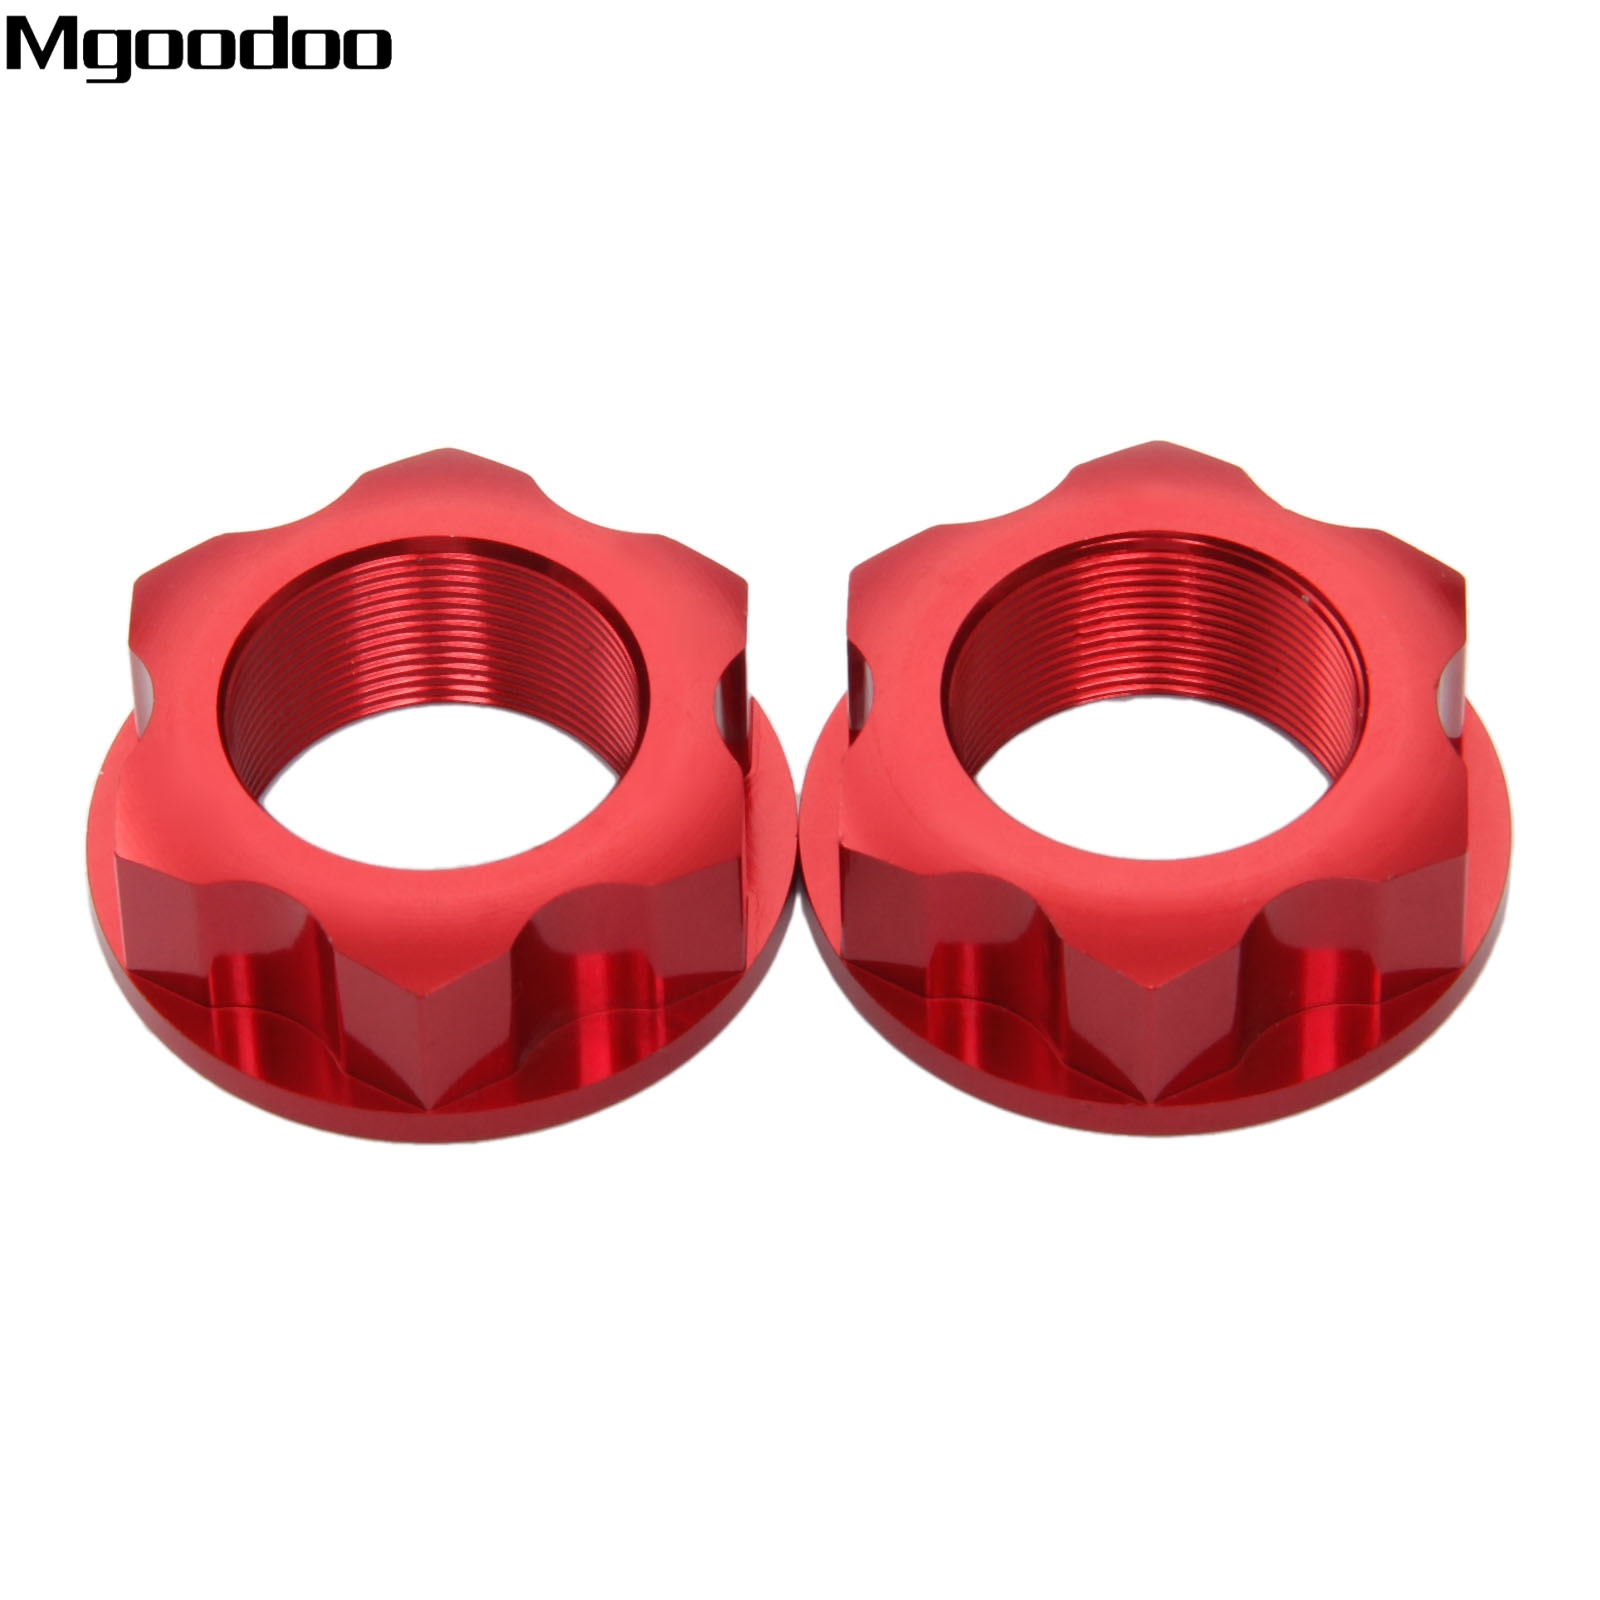 Mgoodoo CNC Aluminum Motorcycle Steering Stem Nut For Honda CBR250R CBR300 CBF150 CBF125 Enduro Dirt Bike Off Road Accessories motorcycle cnc aluminum 7108 gear shift shifter lever for crf 250 2004 2009 motorcycle motocross mx enduro dirt bike off road